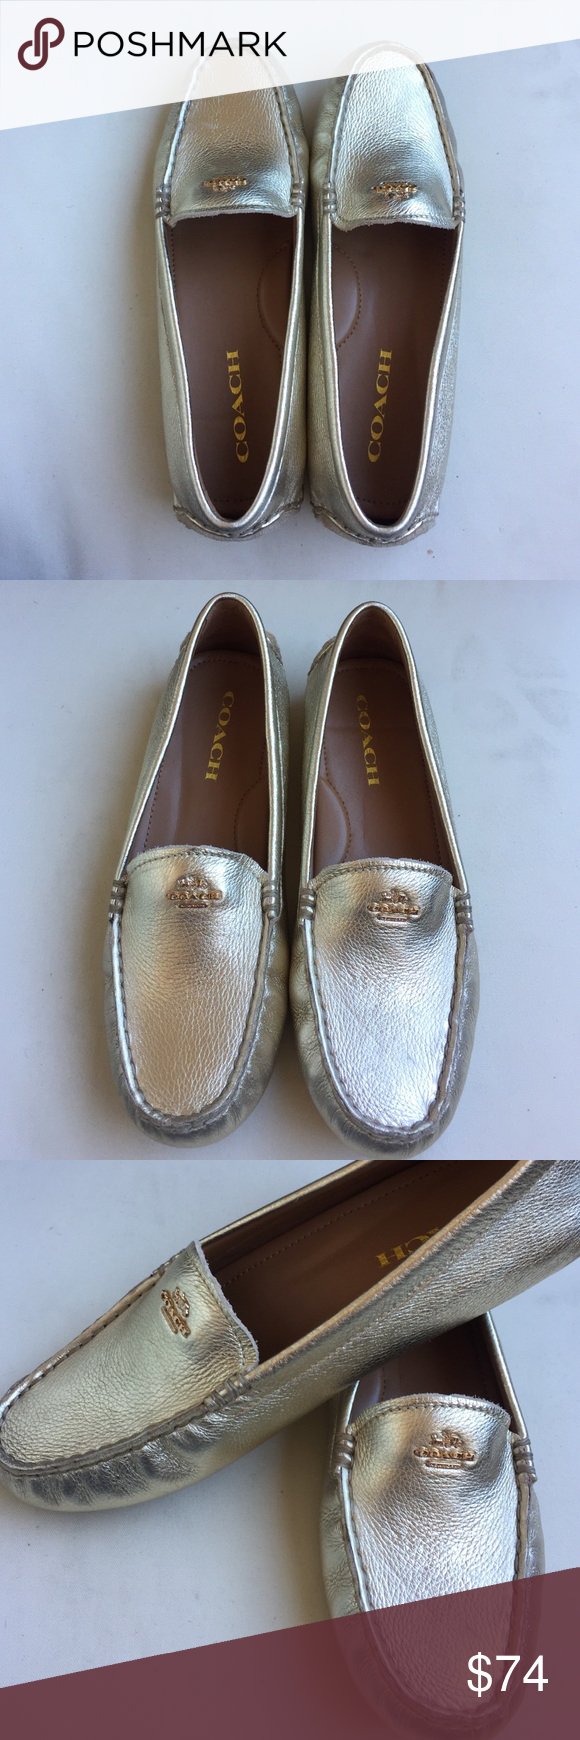 180bd04e4e2 NWOT Gold Coach Amber Loafers - 7 NWOT Gold Coach Amber Loafers ...